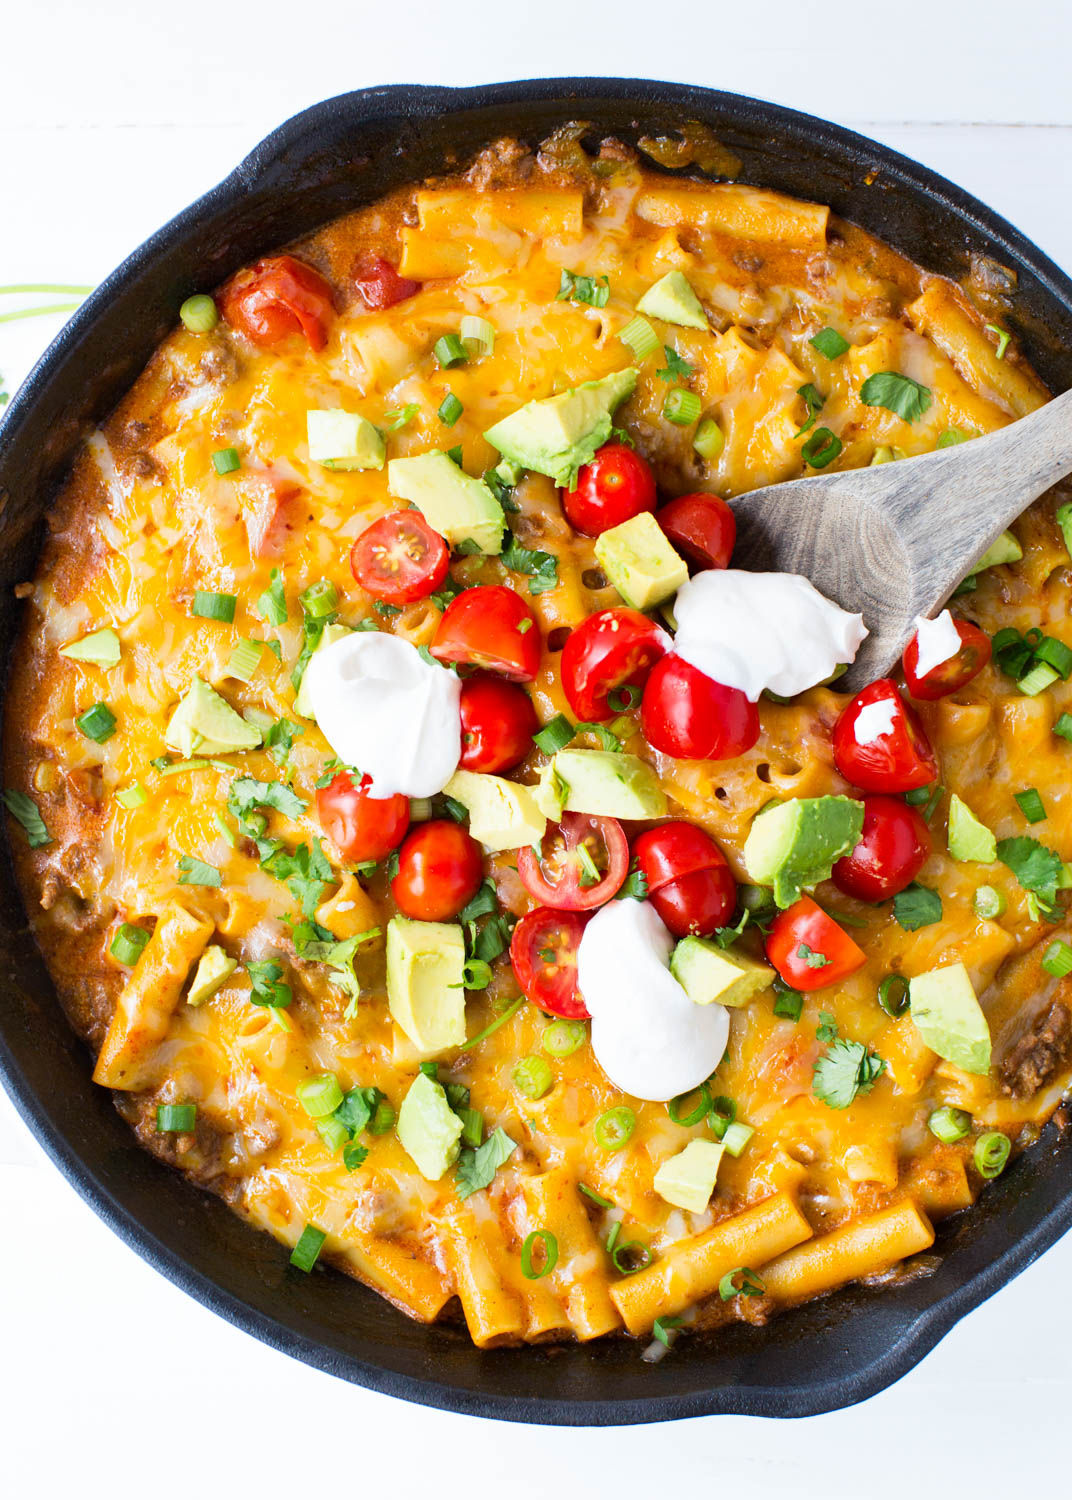 23 super delicious Cinco de Mayo recipes - everything you need to celebrate in the tastiest way possible!